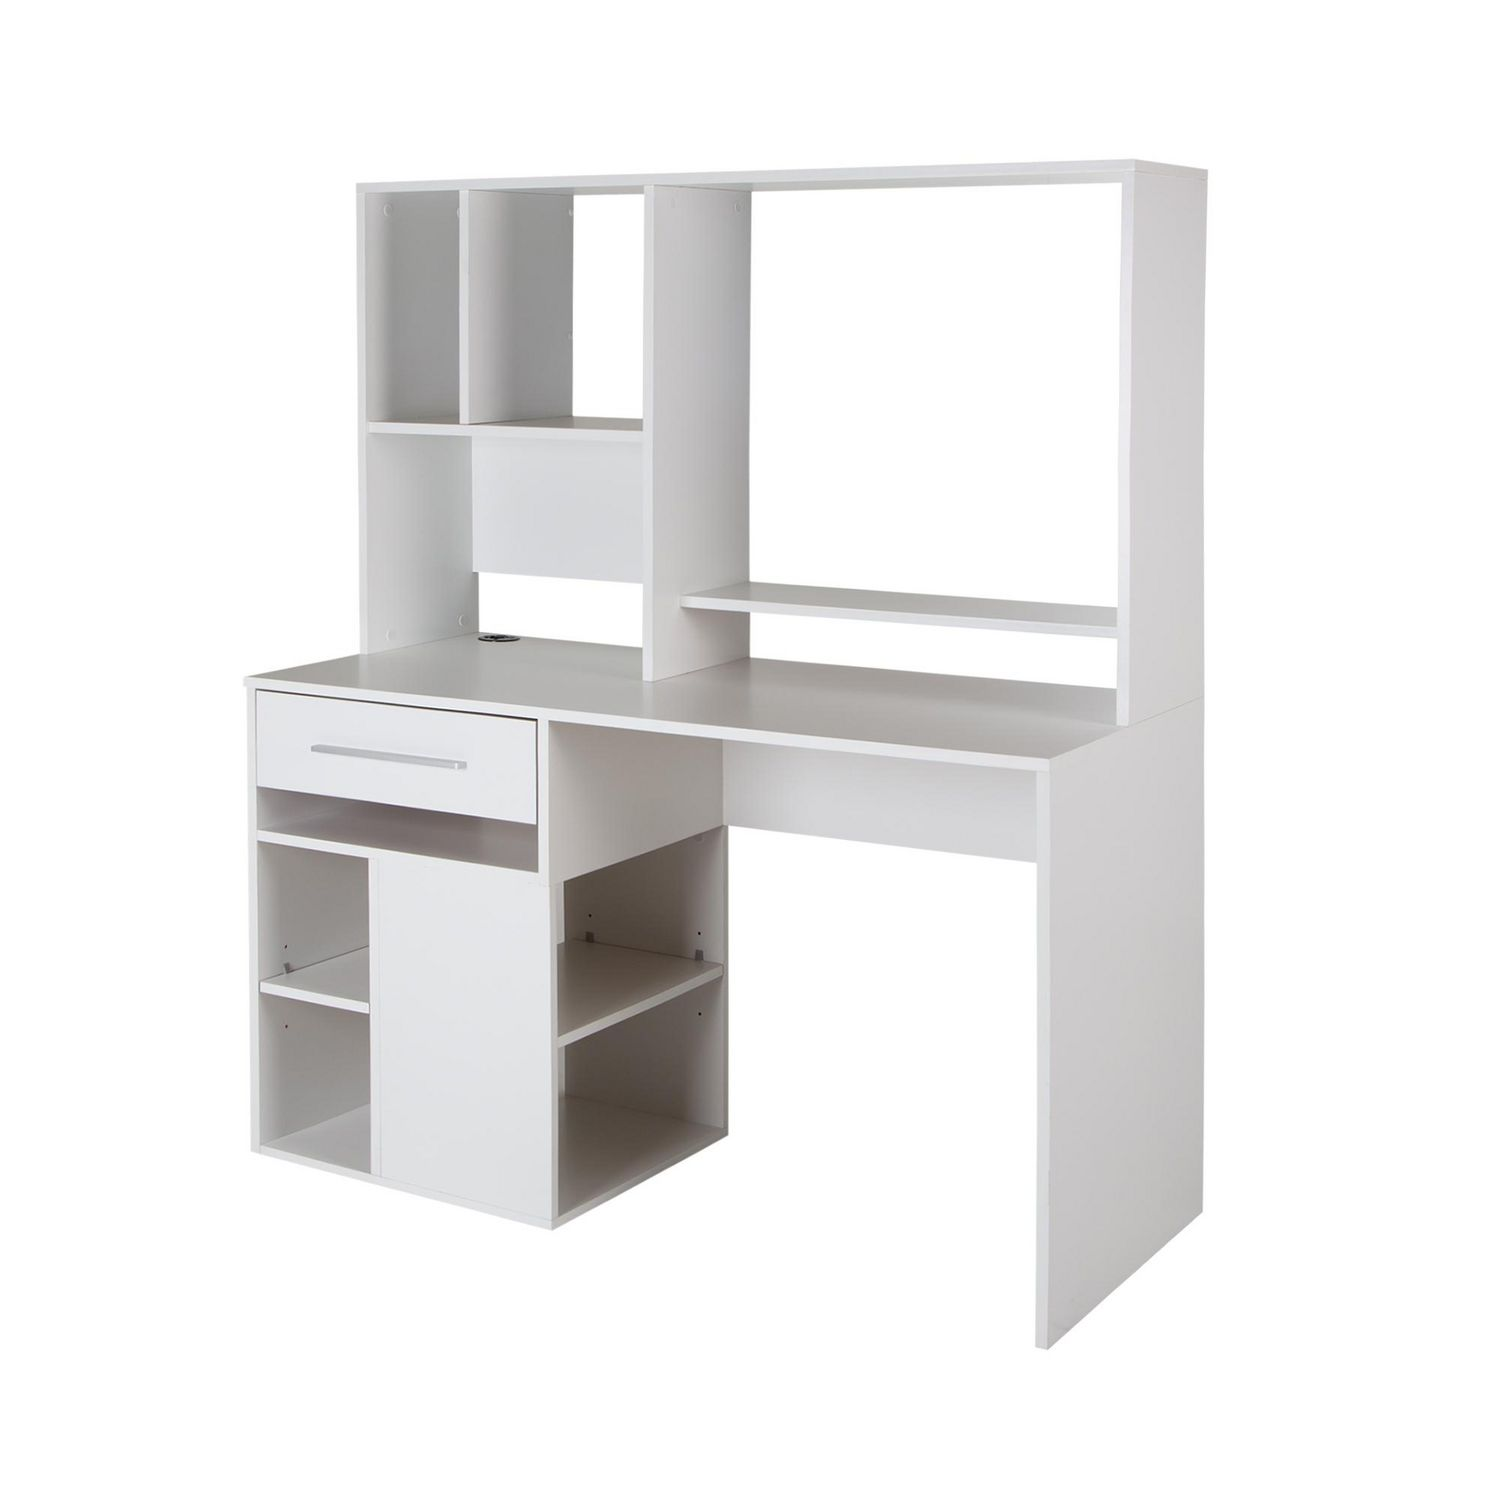 in online biggest office of store desk home trishley hauslife e and furniture hutch picture